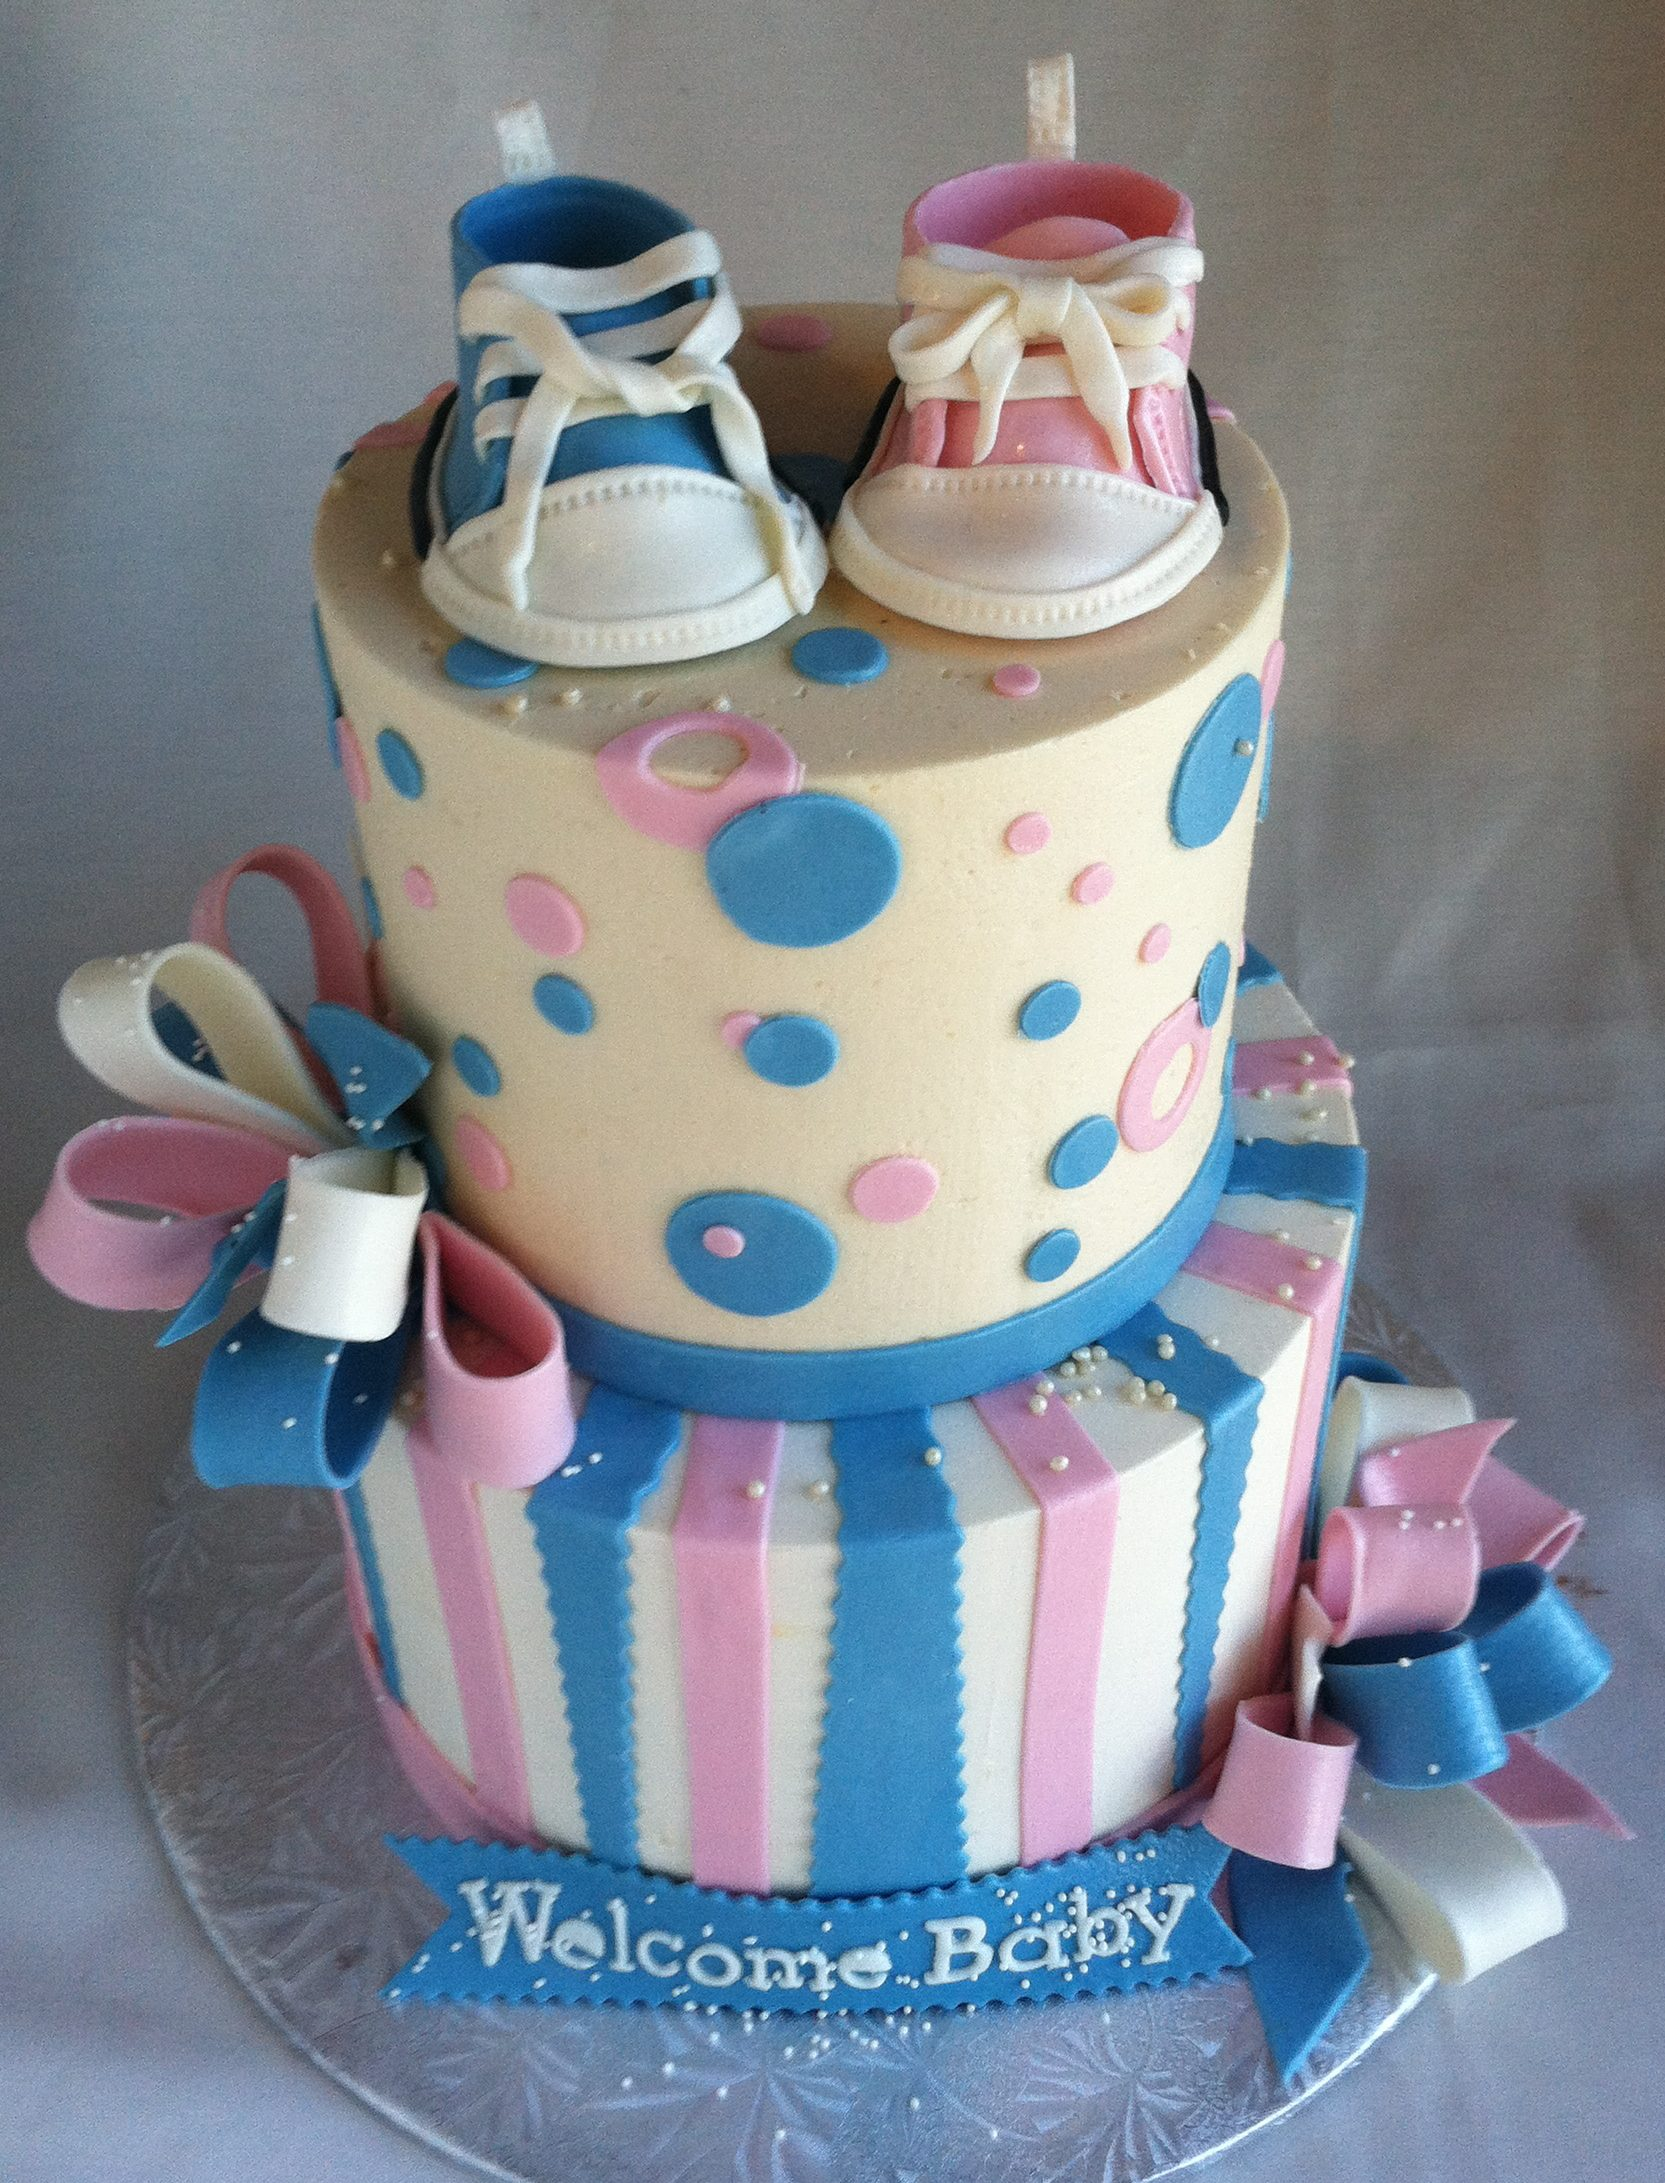 Baby shower cakes portland oregon ~ baby shower cakes laurie clarke portland oregon